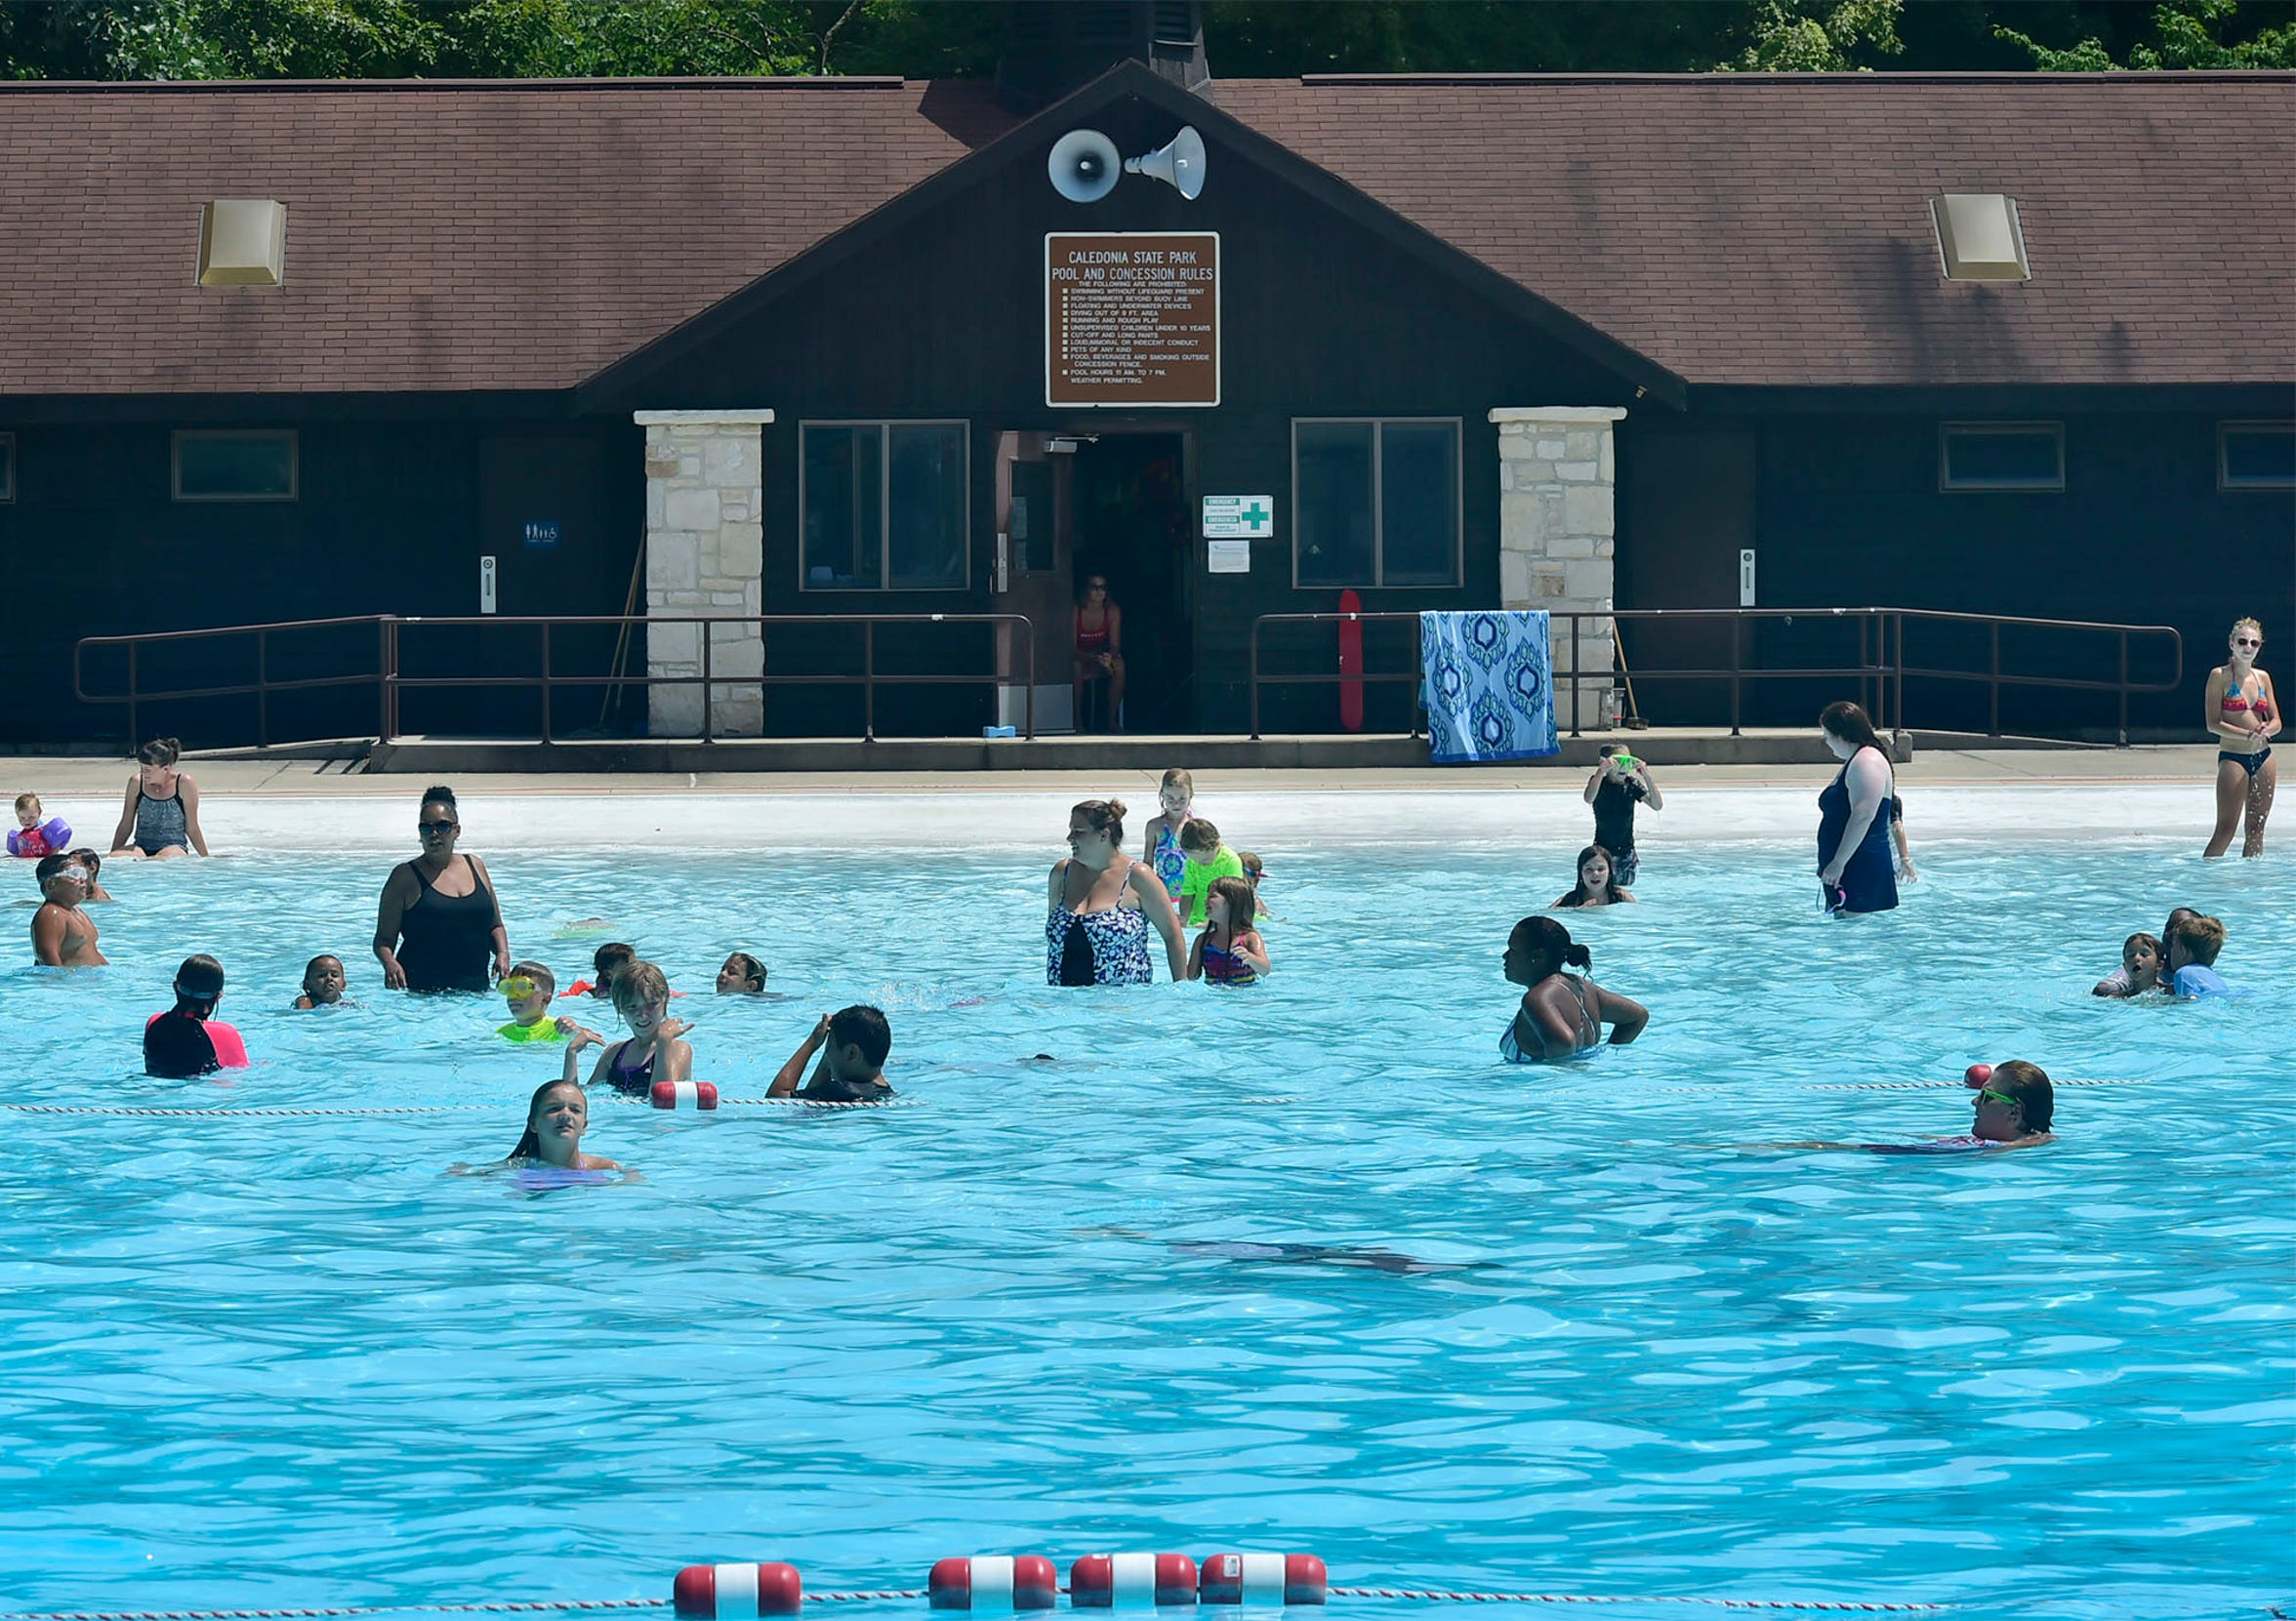 Patrons enjoy a warm day at Caledonia State Park pool, 101 Pine Grove Road, on Tuesday, August 7, 2018. A swimmer recently drowned at the Fayetteville area pool.